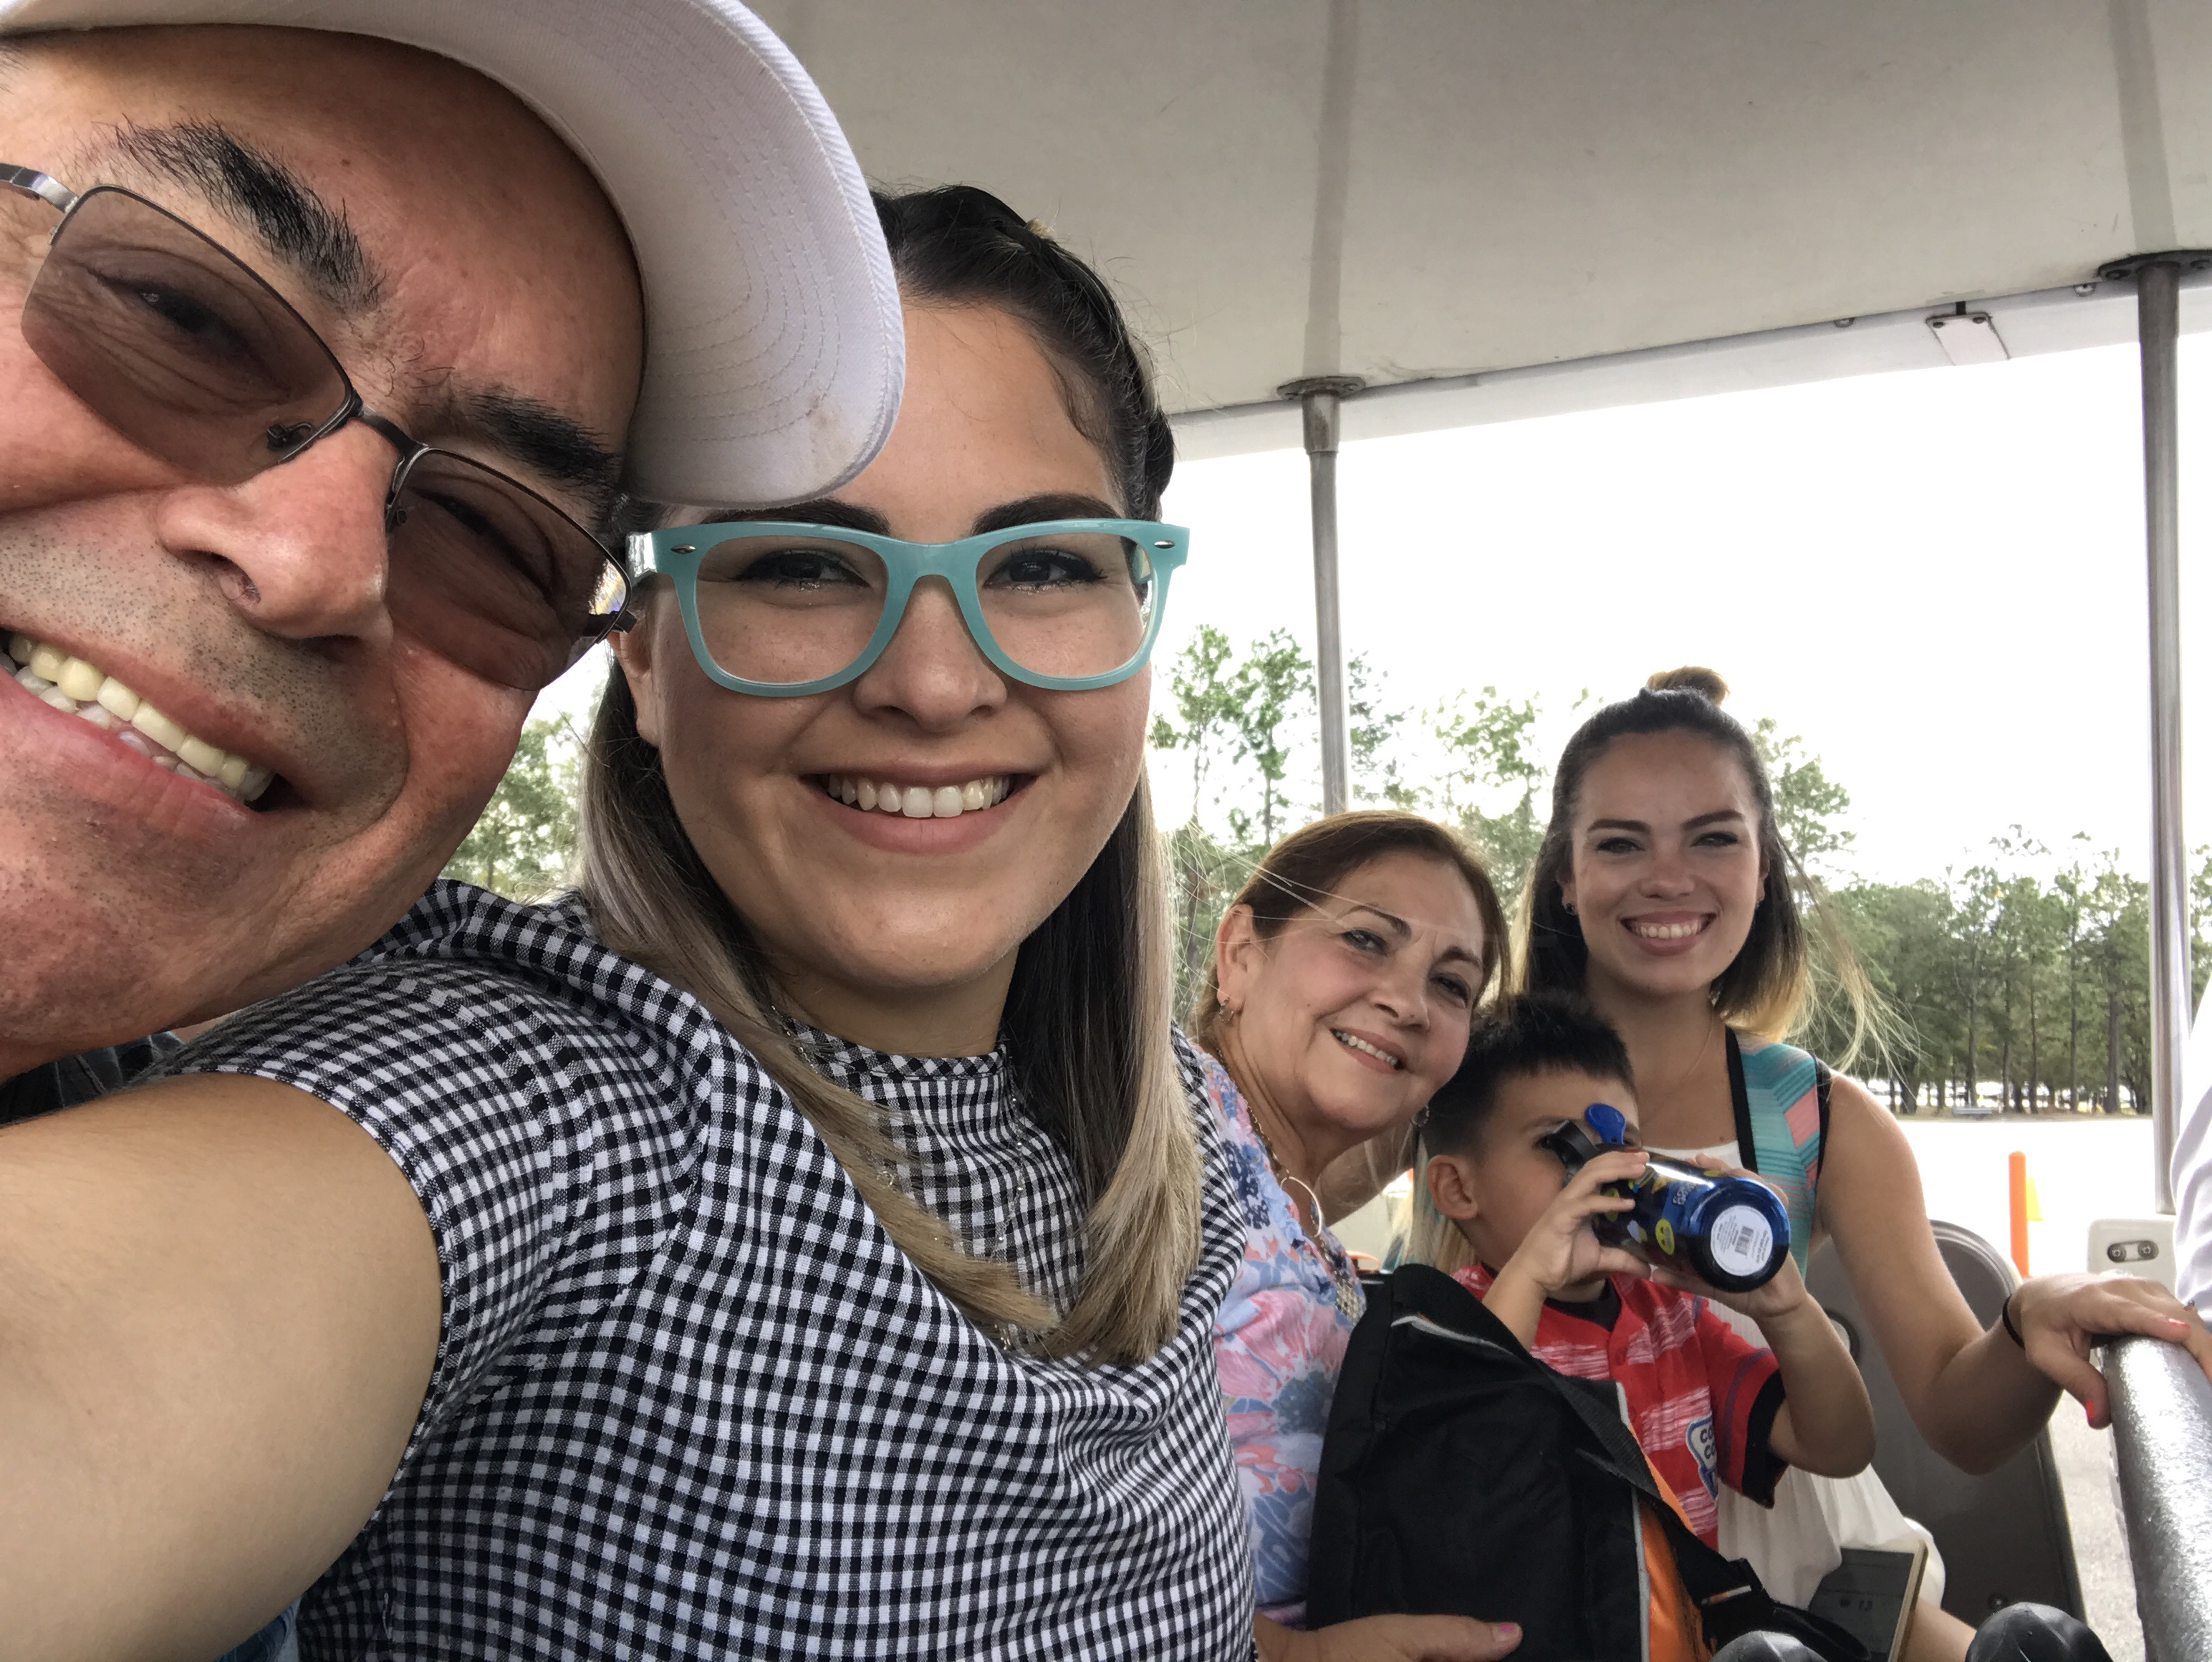 La familia en Disney Magic Kingdom